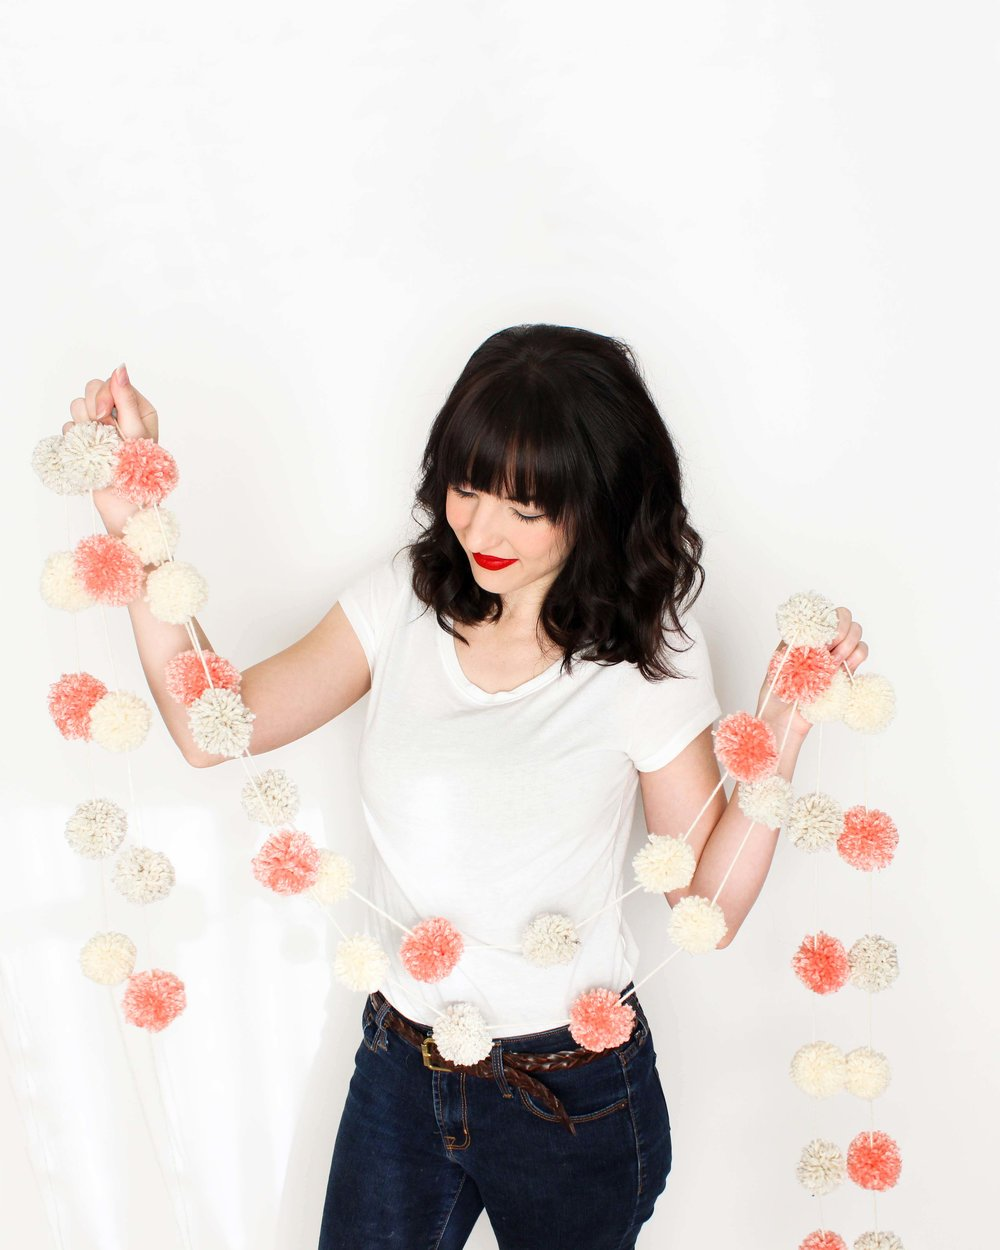 making a pom pom garland with new boye pom pom maker // via www.darlingbebrave.com